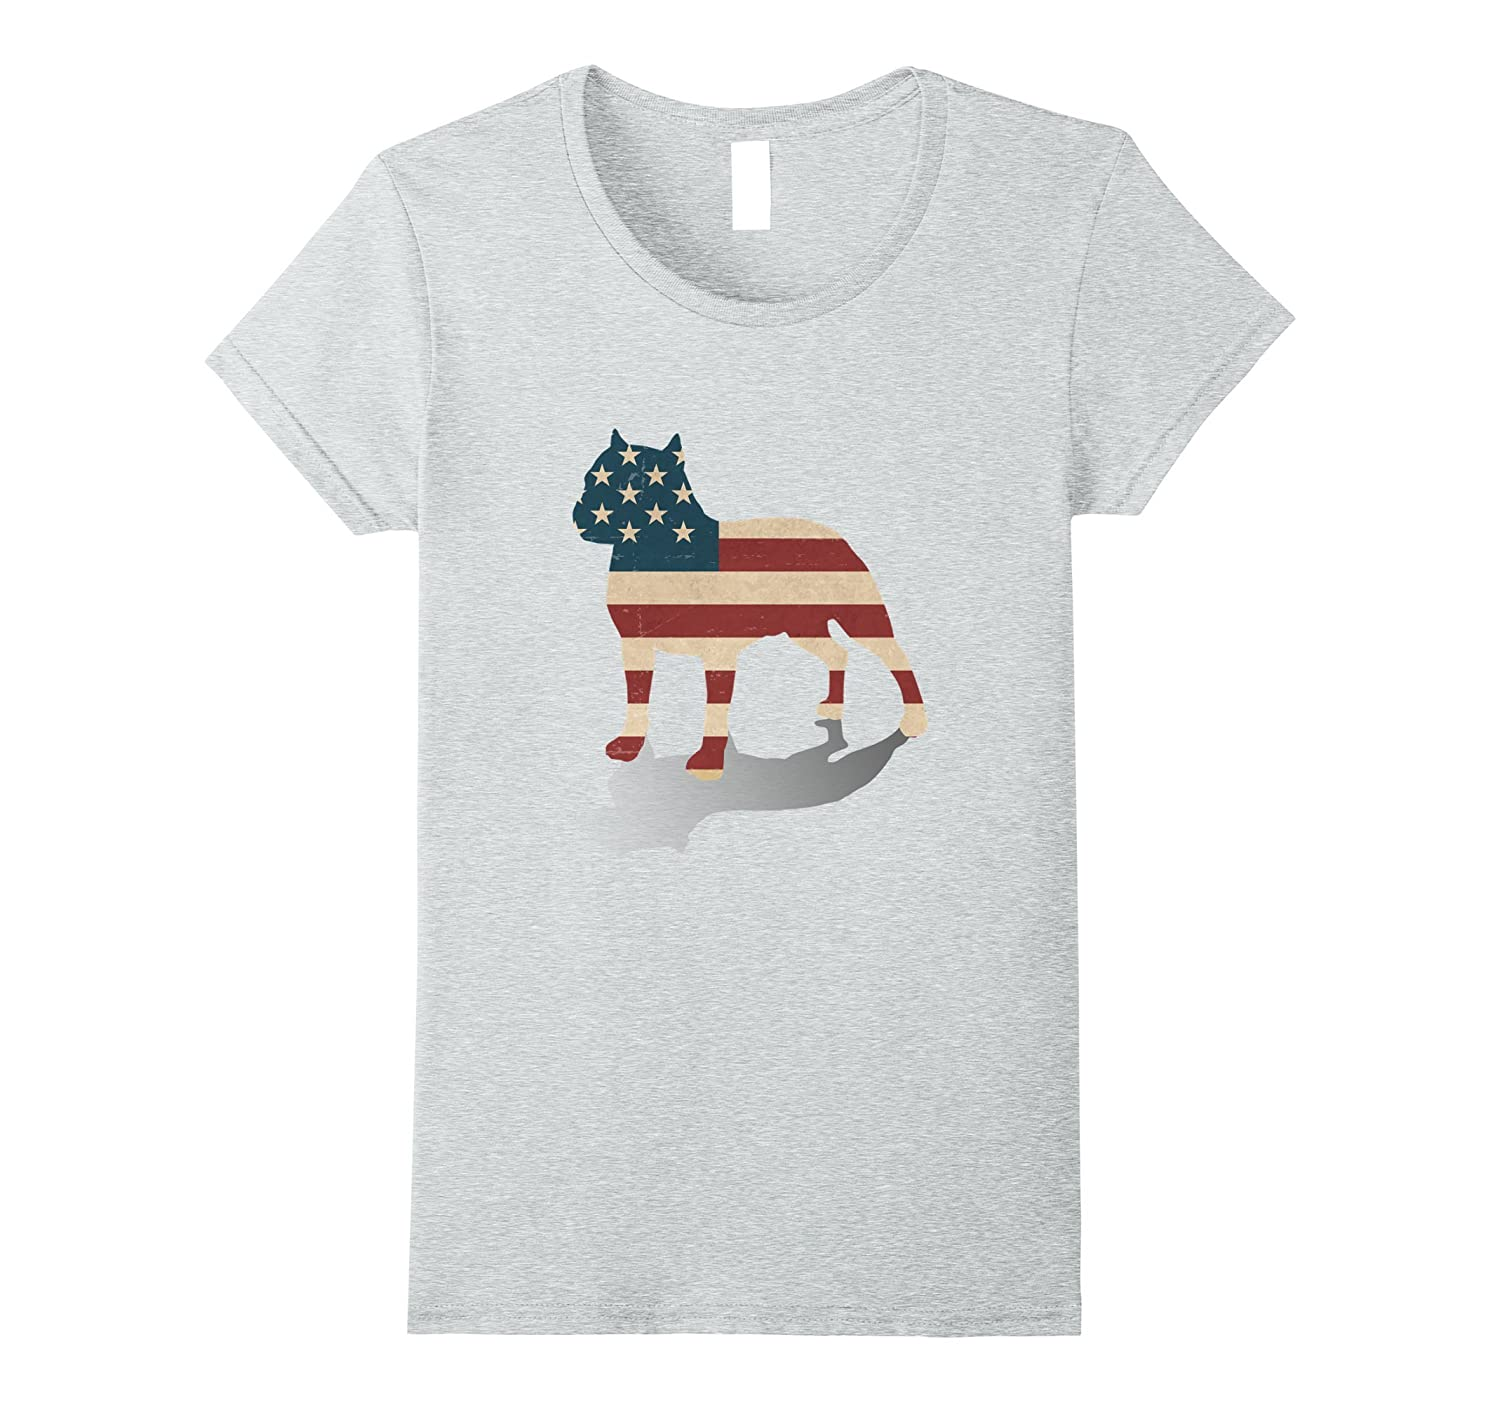 Patriotic Pitbull – Canine Silhouette with Flag